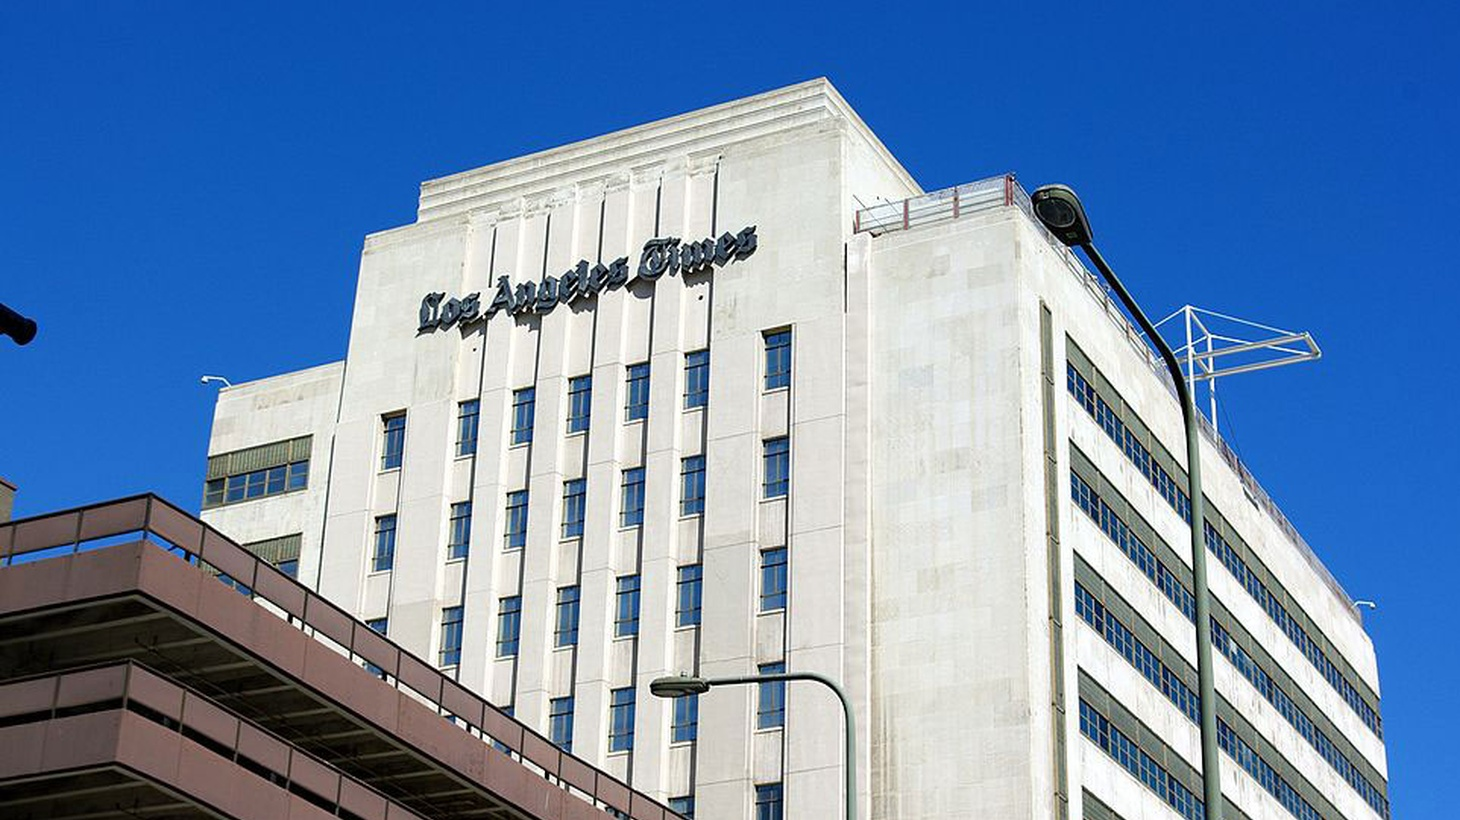 There are fears that the Los Angeles Times is building a shadow, non-union newsroom. The paper's new Editor in Chief, Jim Kirk, will have to calm those fears. We find out what's happening to this town's storied newspaper.